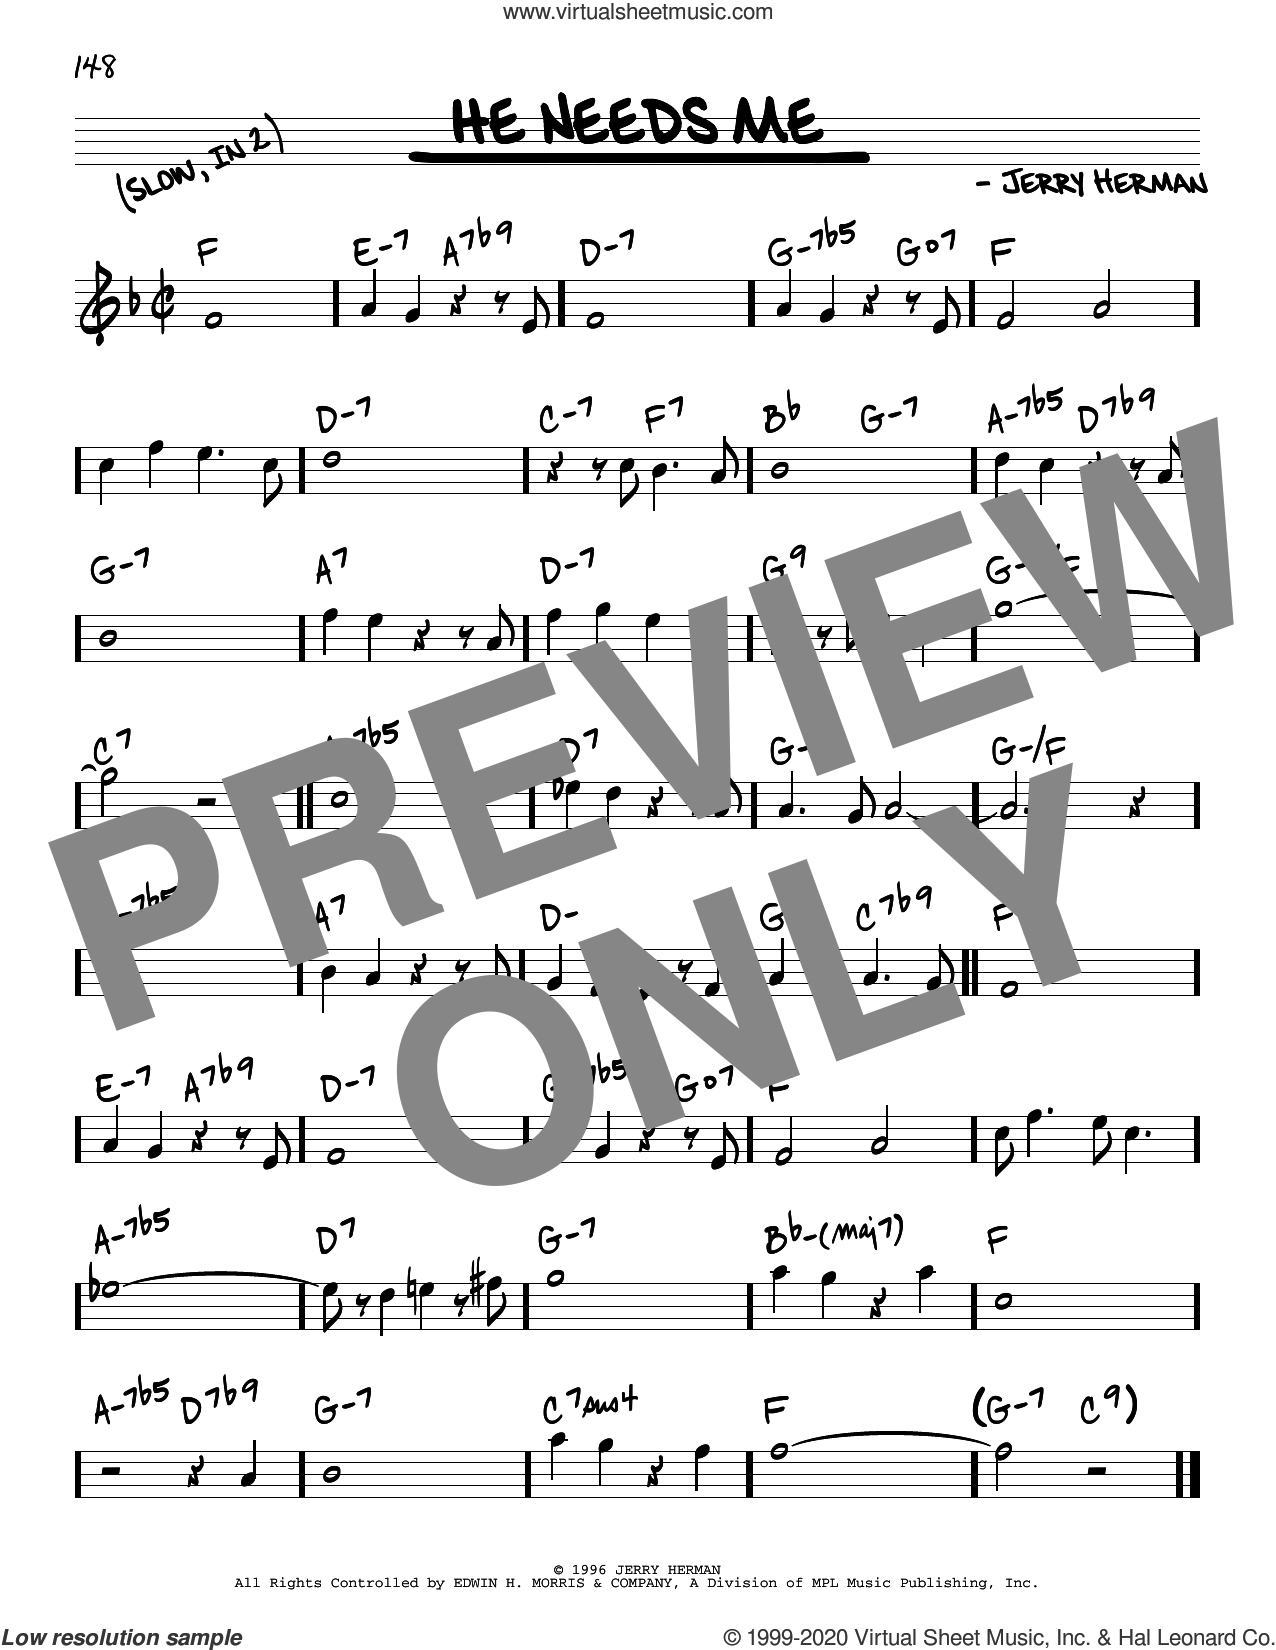 He Needs Me sheet music for voice and other instruments (real book) by Jerry Herman, intermediate skill level